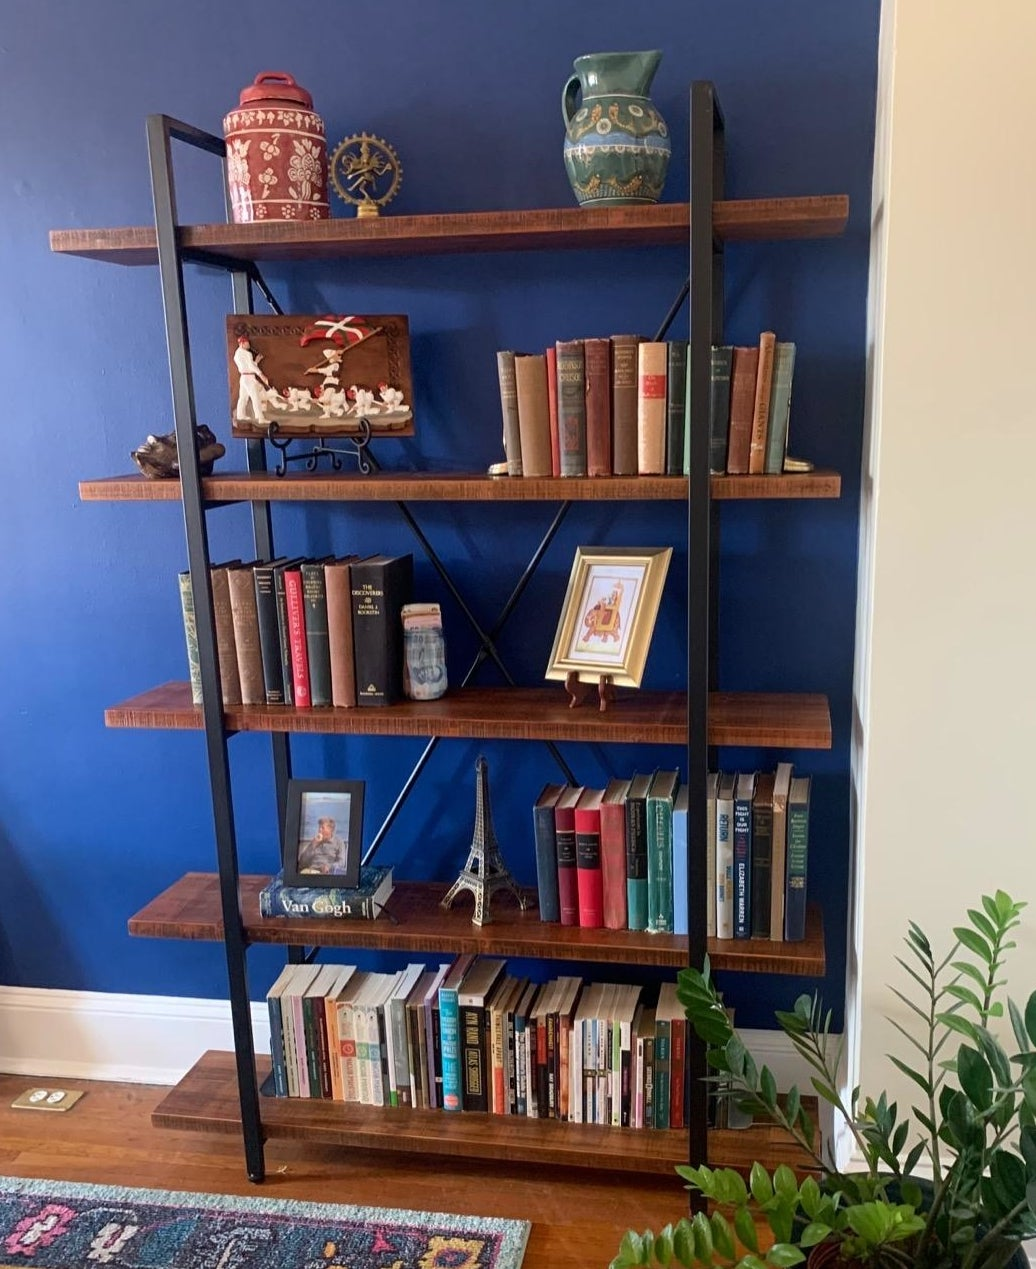 Reviewer pic of the five-shelf bookcase with books, pictures, and other trinkets on each shelf.